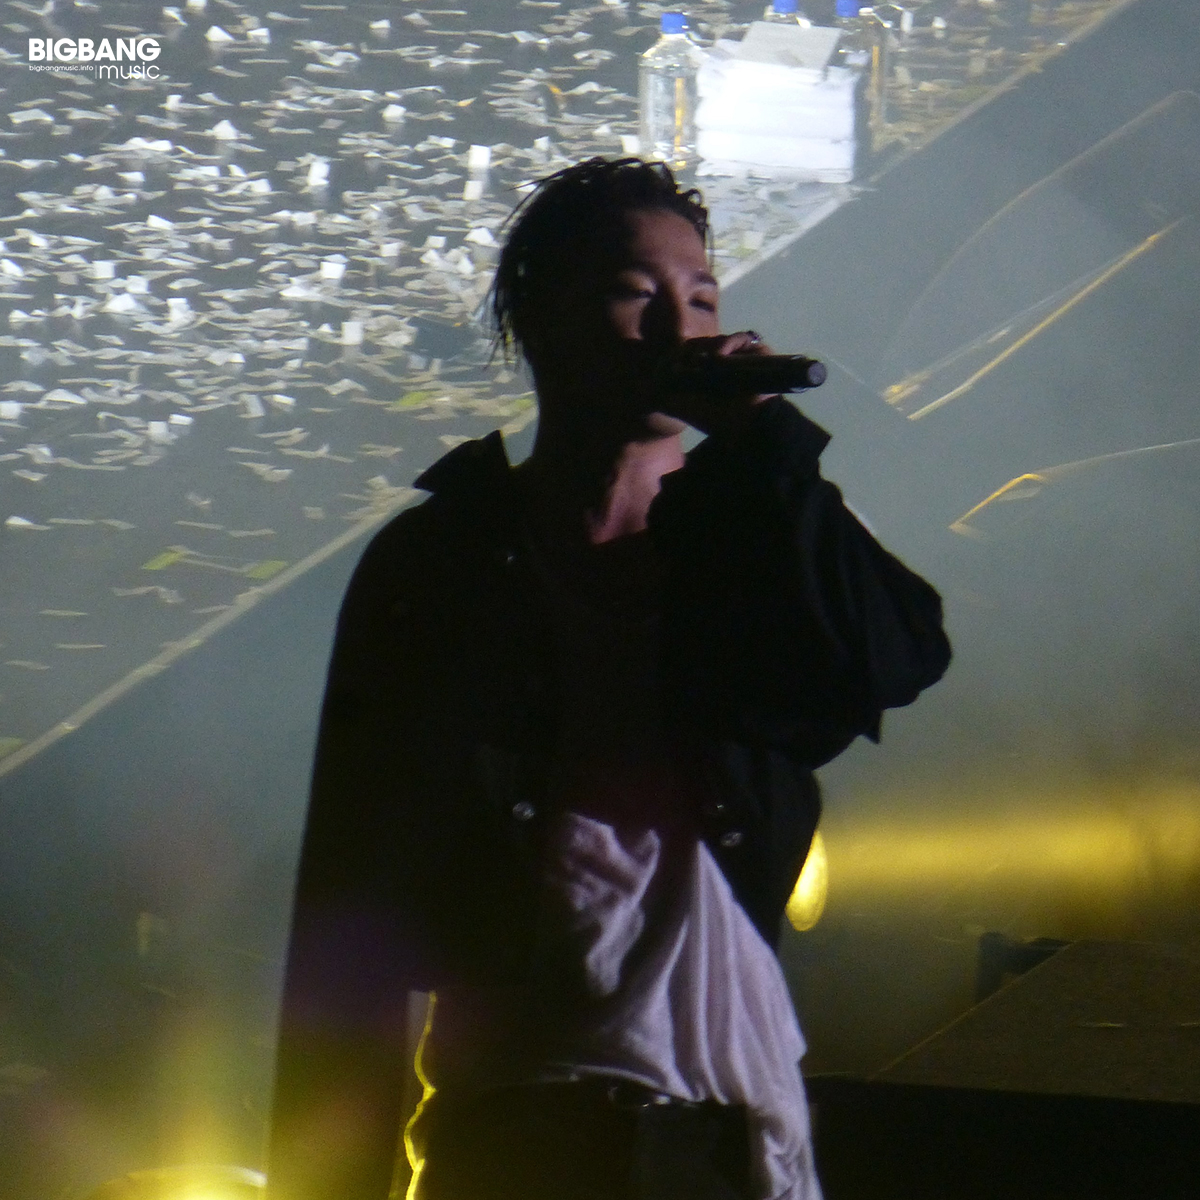 BBmusic-BIGBANG-Hong-Kong-Day-1-2016-07-22-15